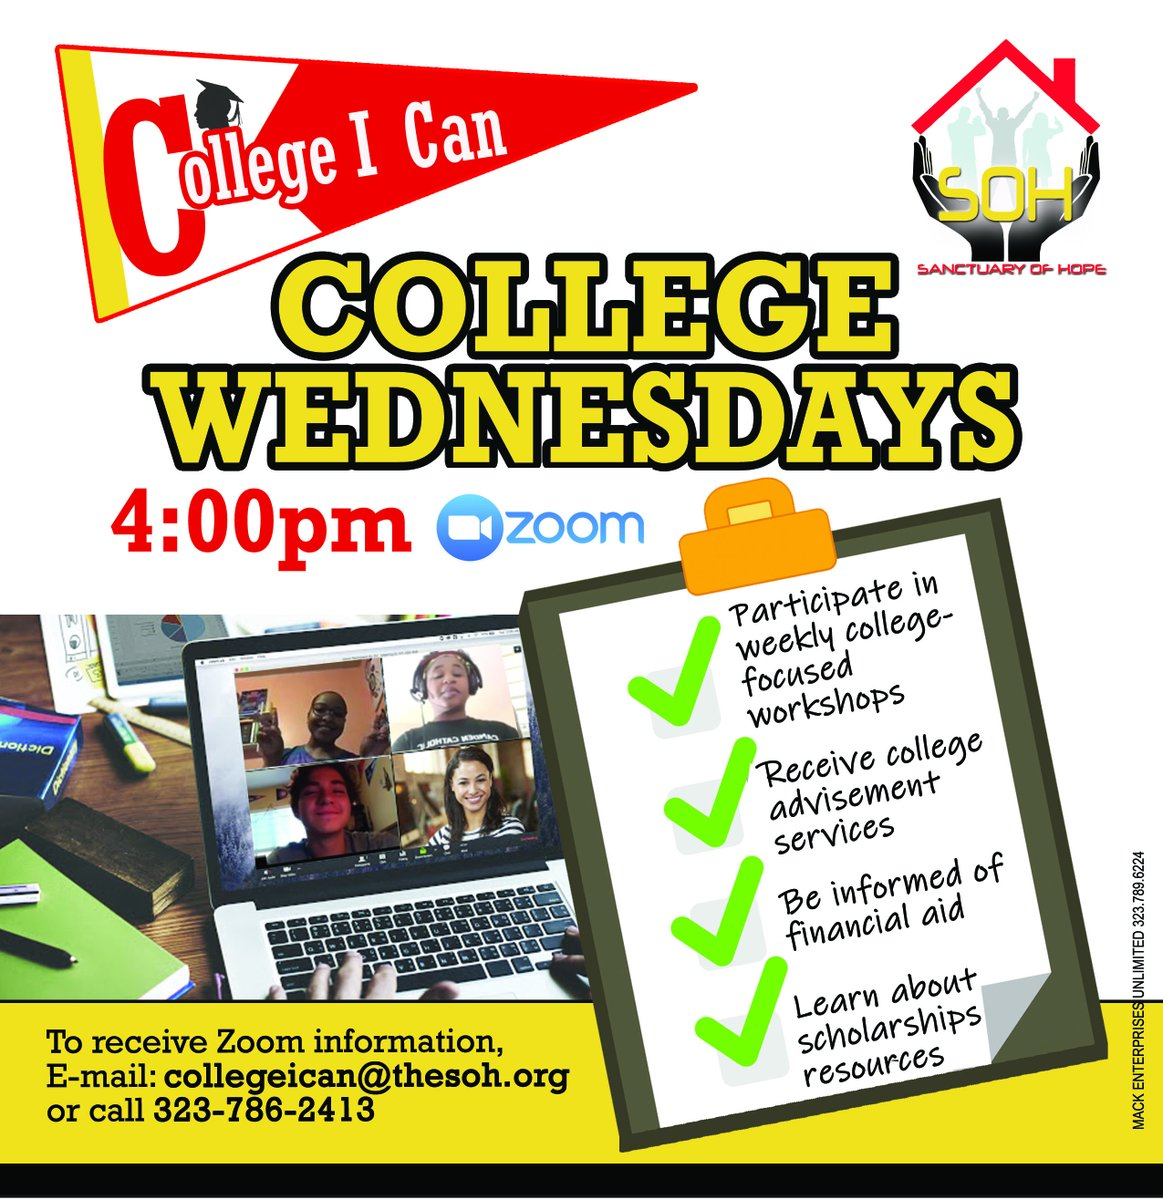 College I Can is back, every Wednesday on Zoom! Please RSVP!   #CollegeICan  #HigherLearning #College #YouthResiliency #RonaResource #CollegeSigningDay #RemoteLearning  #Zoomevent https://t.co/TiOgvCcjeh